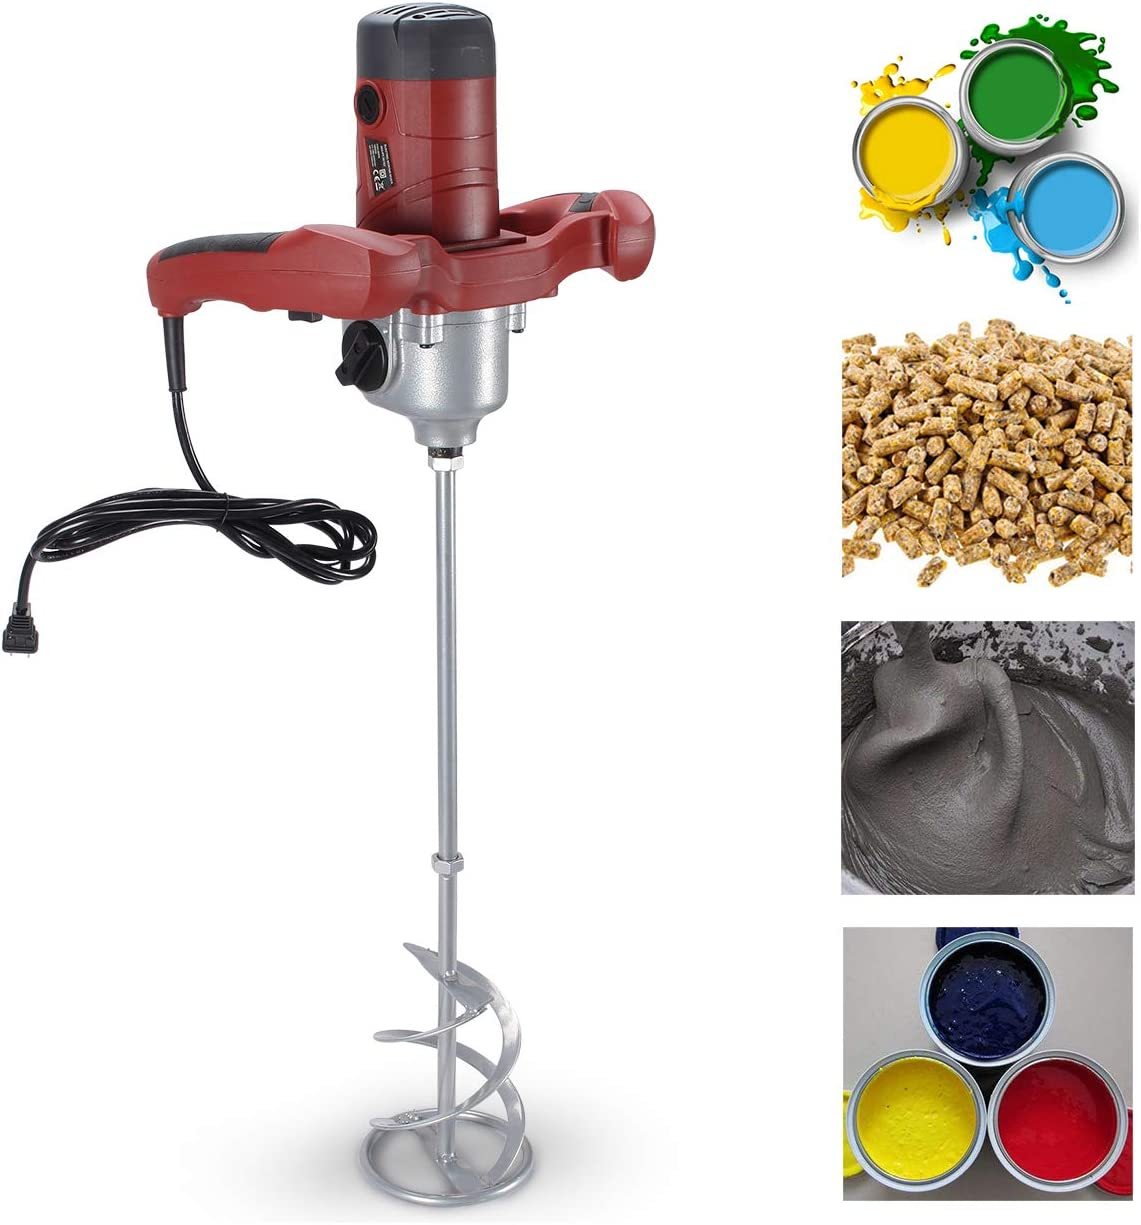 ARKSEN Electric Cement Grout Mortar Mixer Grip 110v Adjustable Speed Variable 6 Speed, 1600W